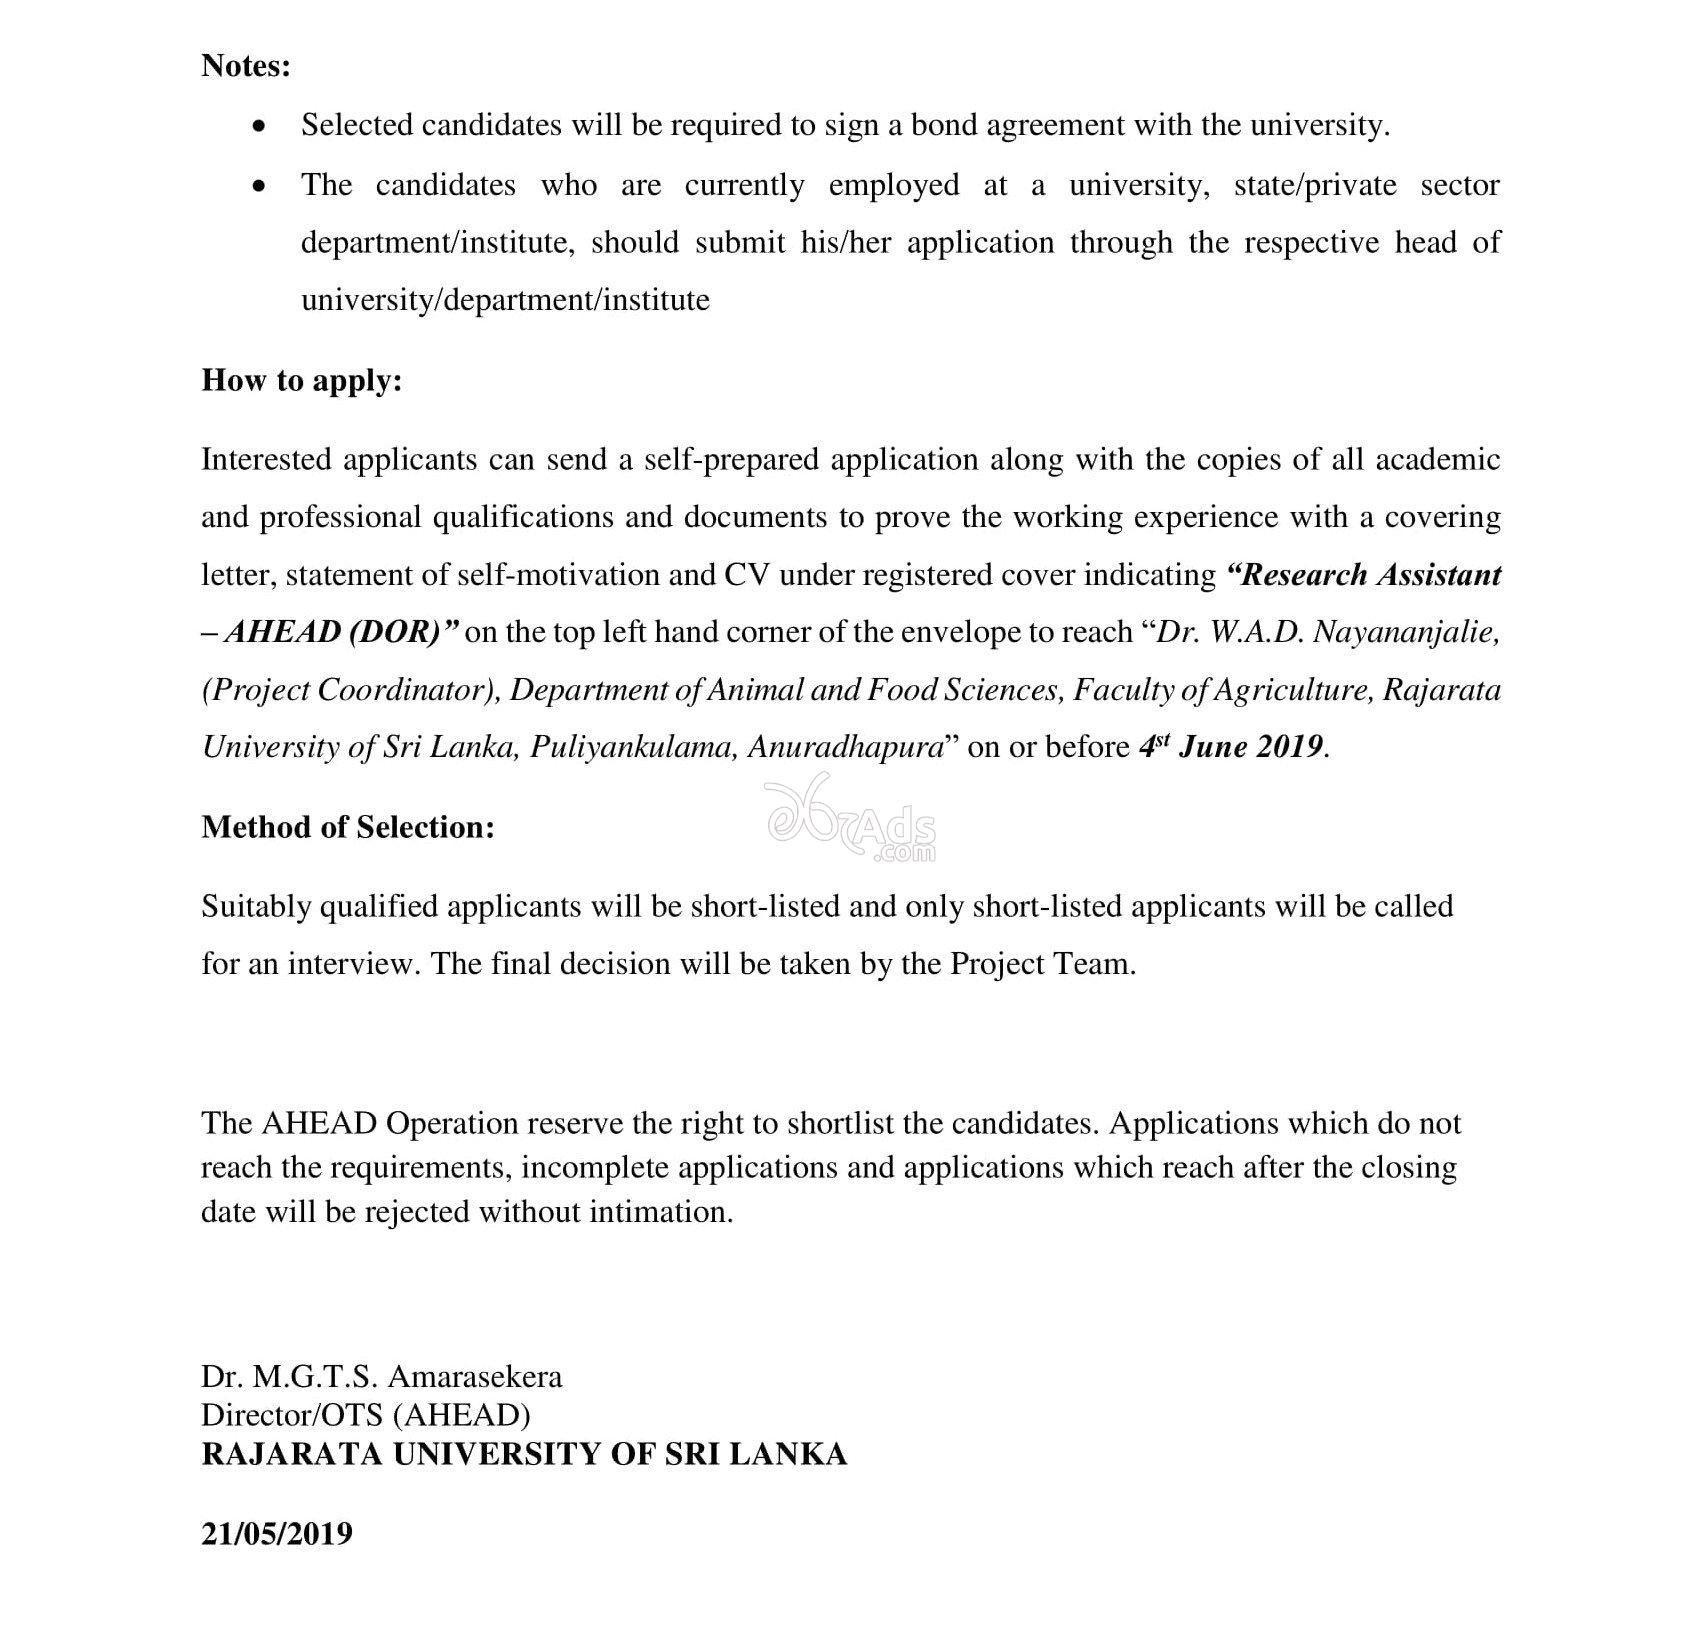 Research Assistant Government Vacancy at Rajarata University of Sri